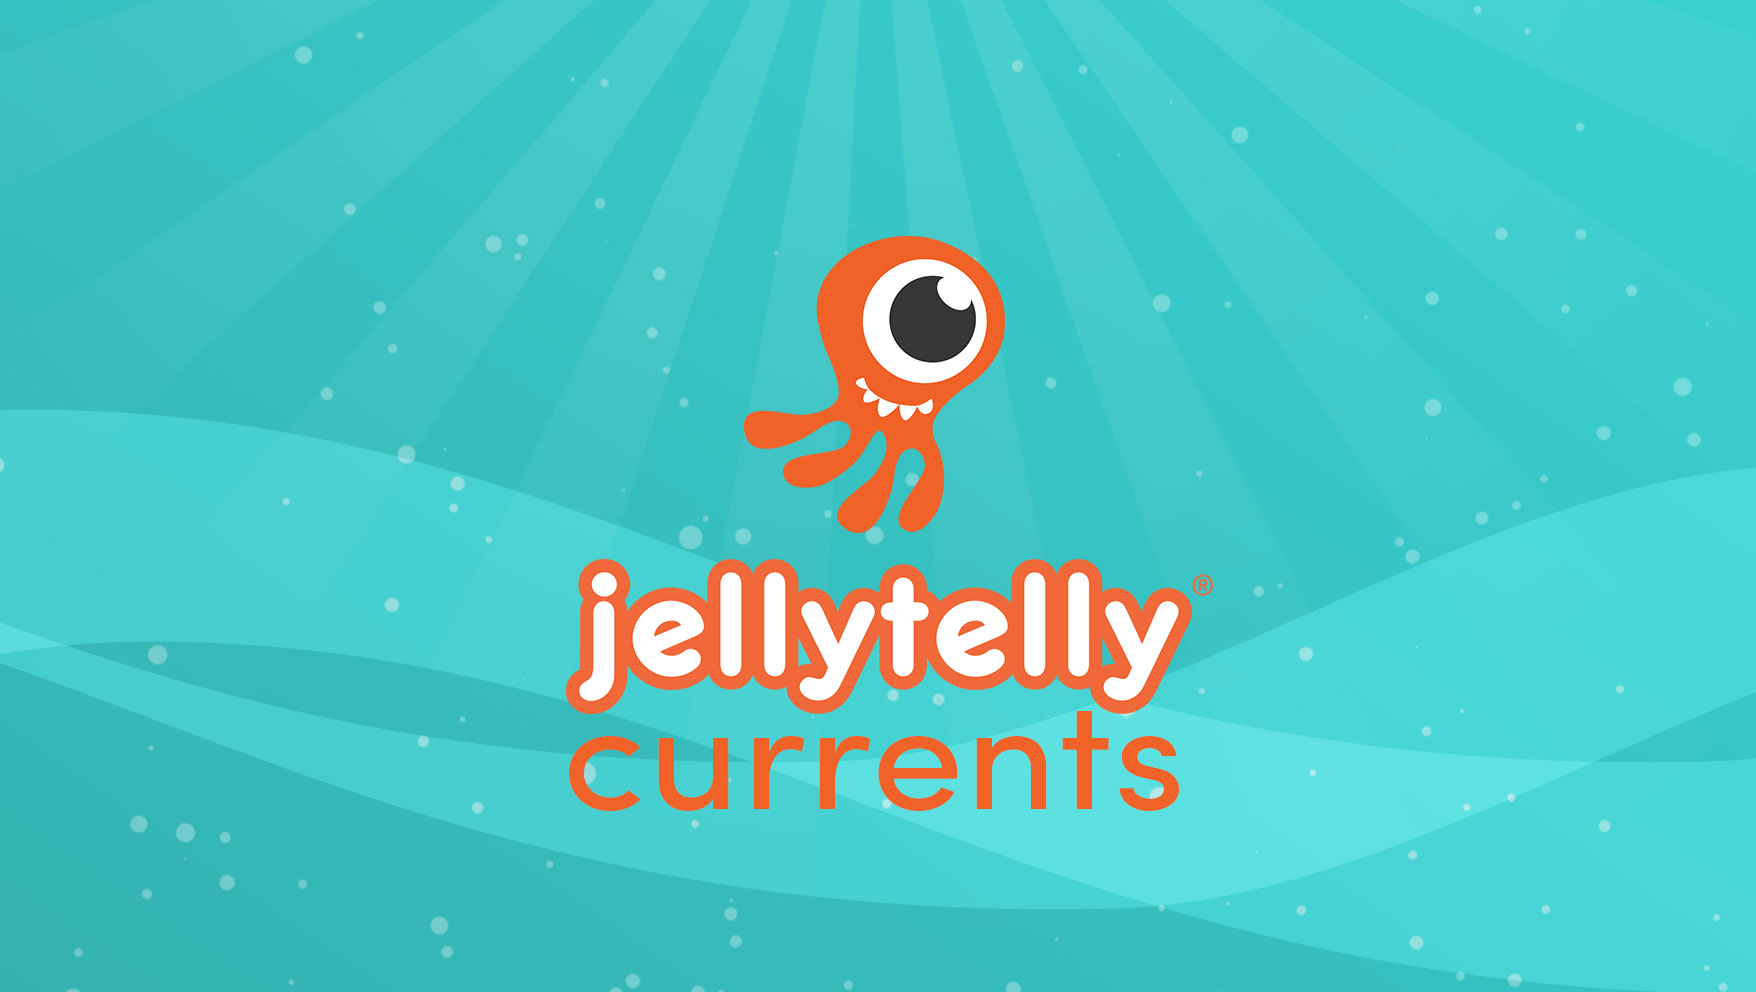 JellyTelly Currents 1/27